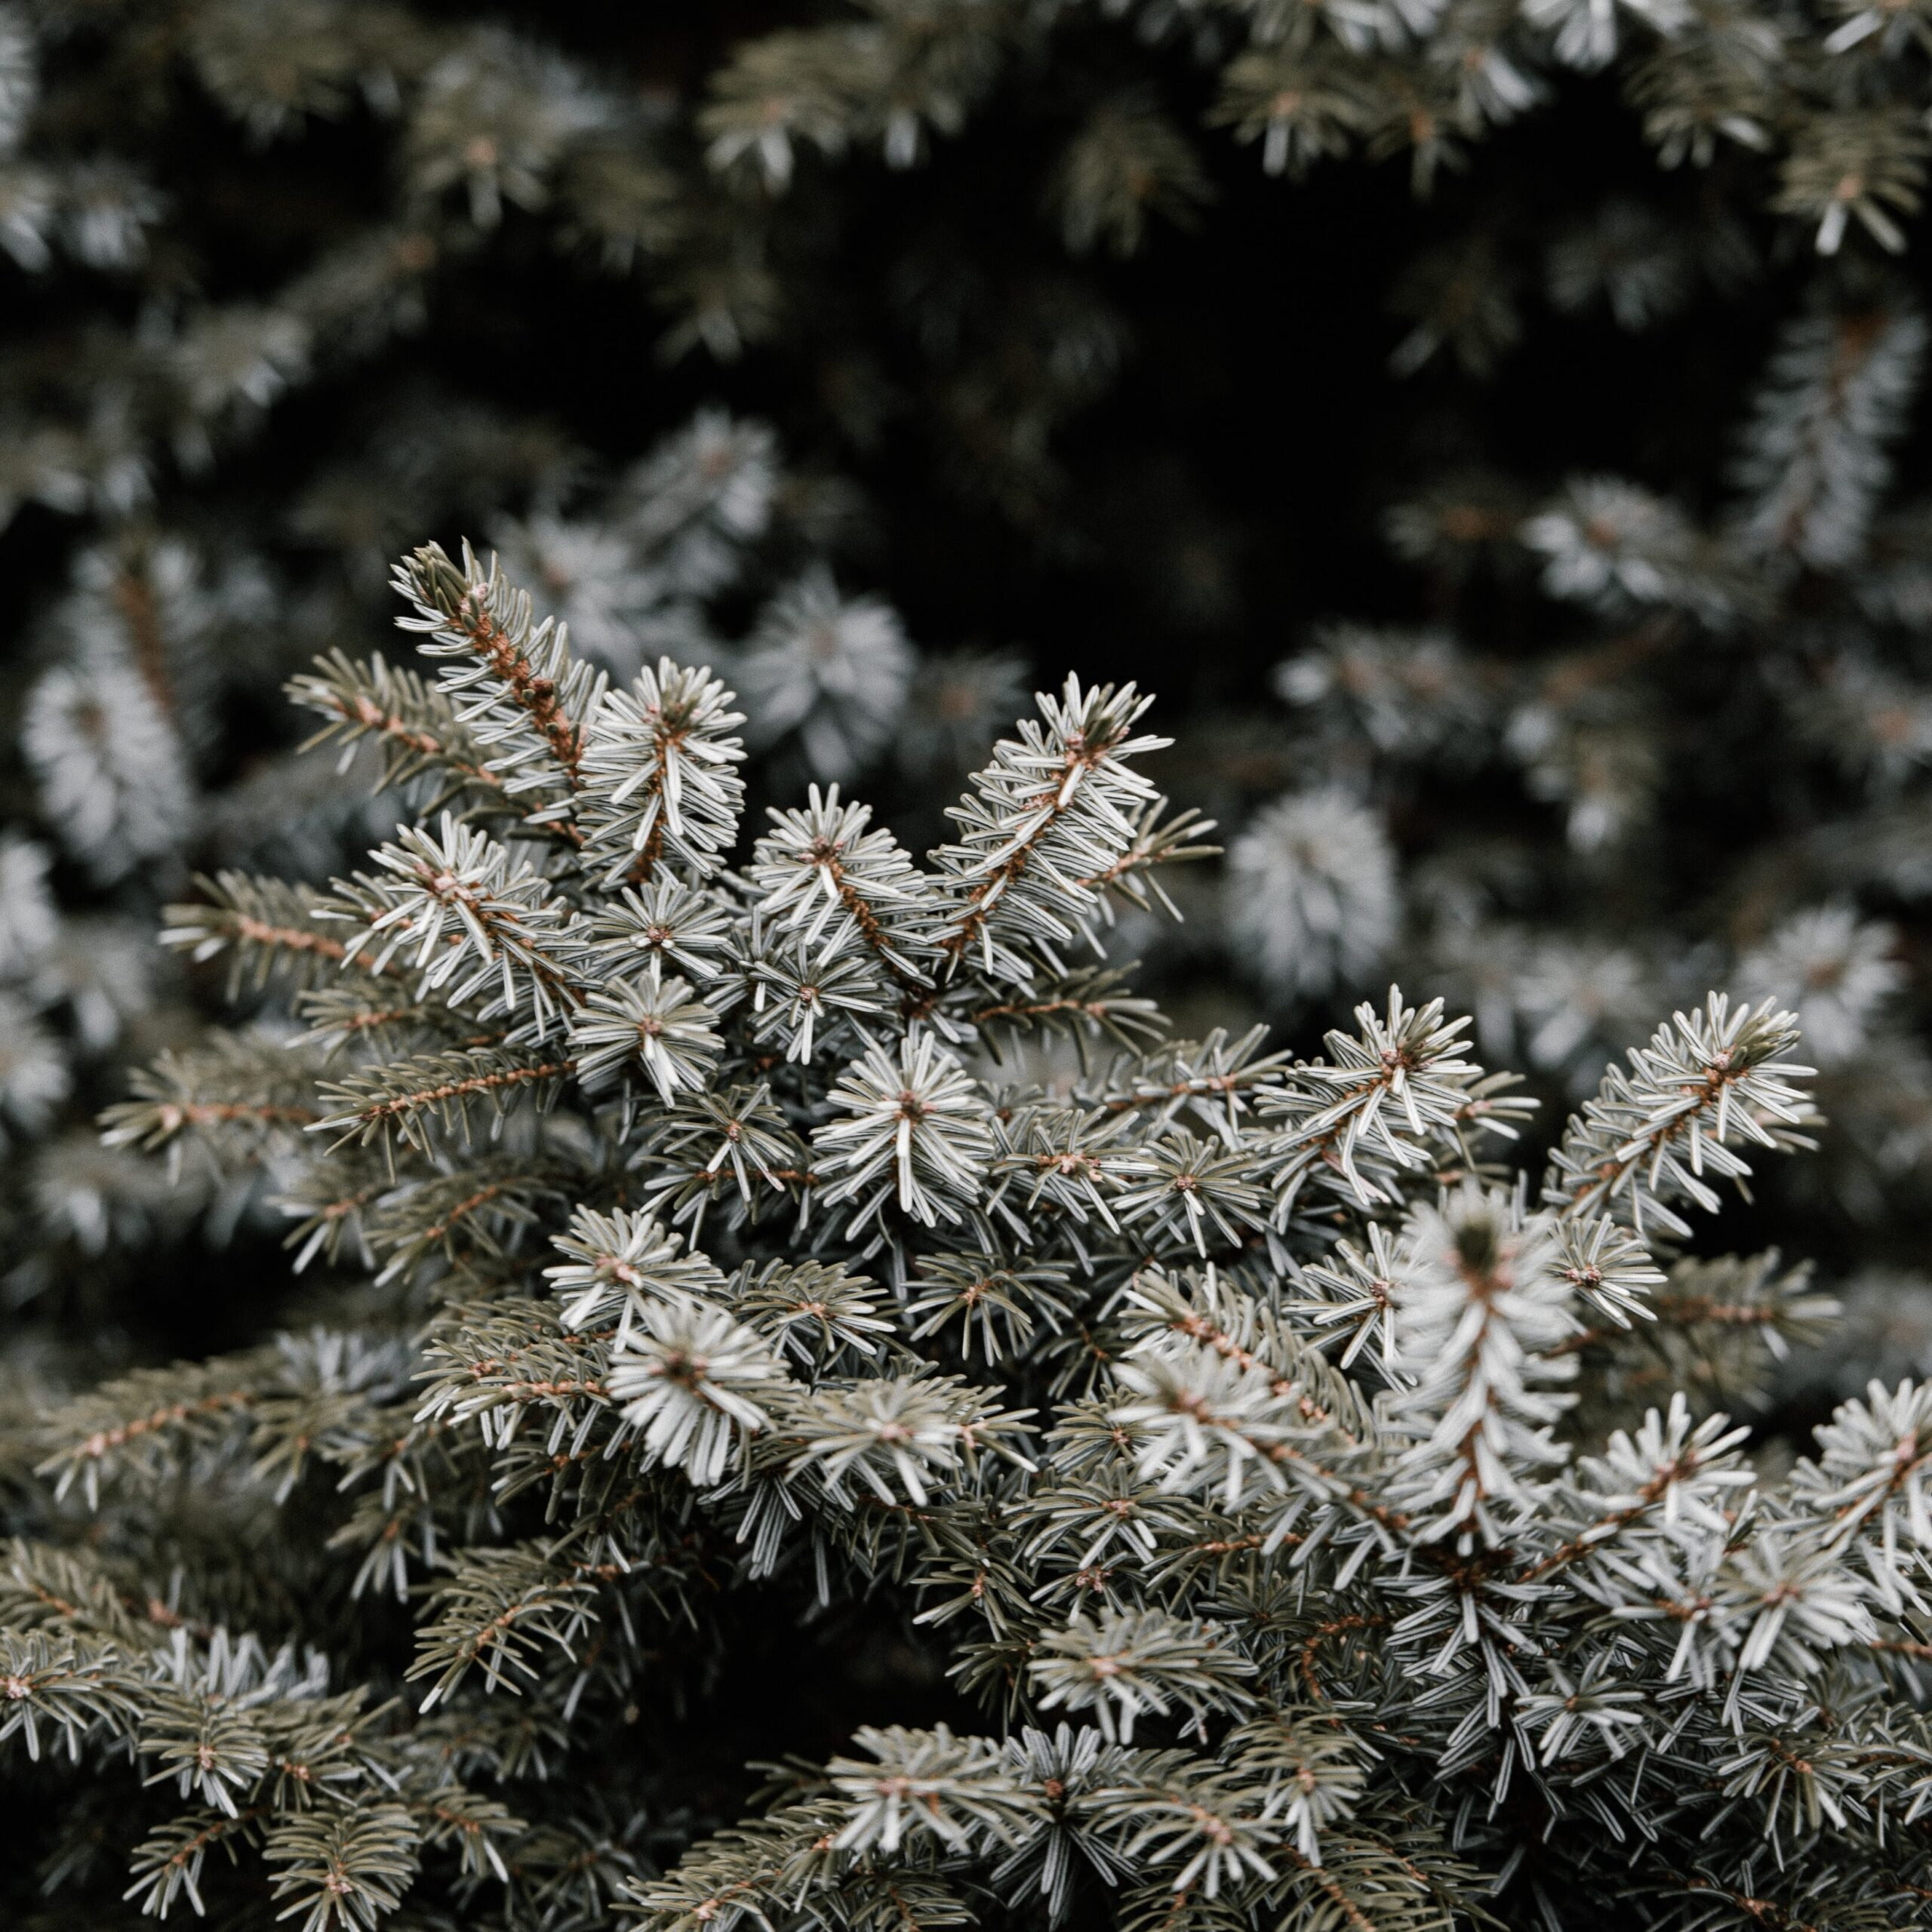 evergreen tree in winter needles covered in snow